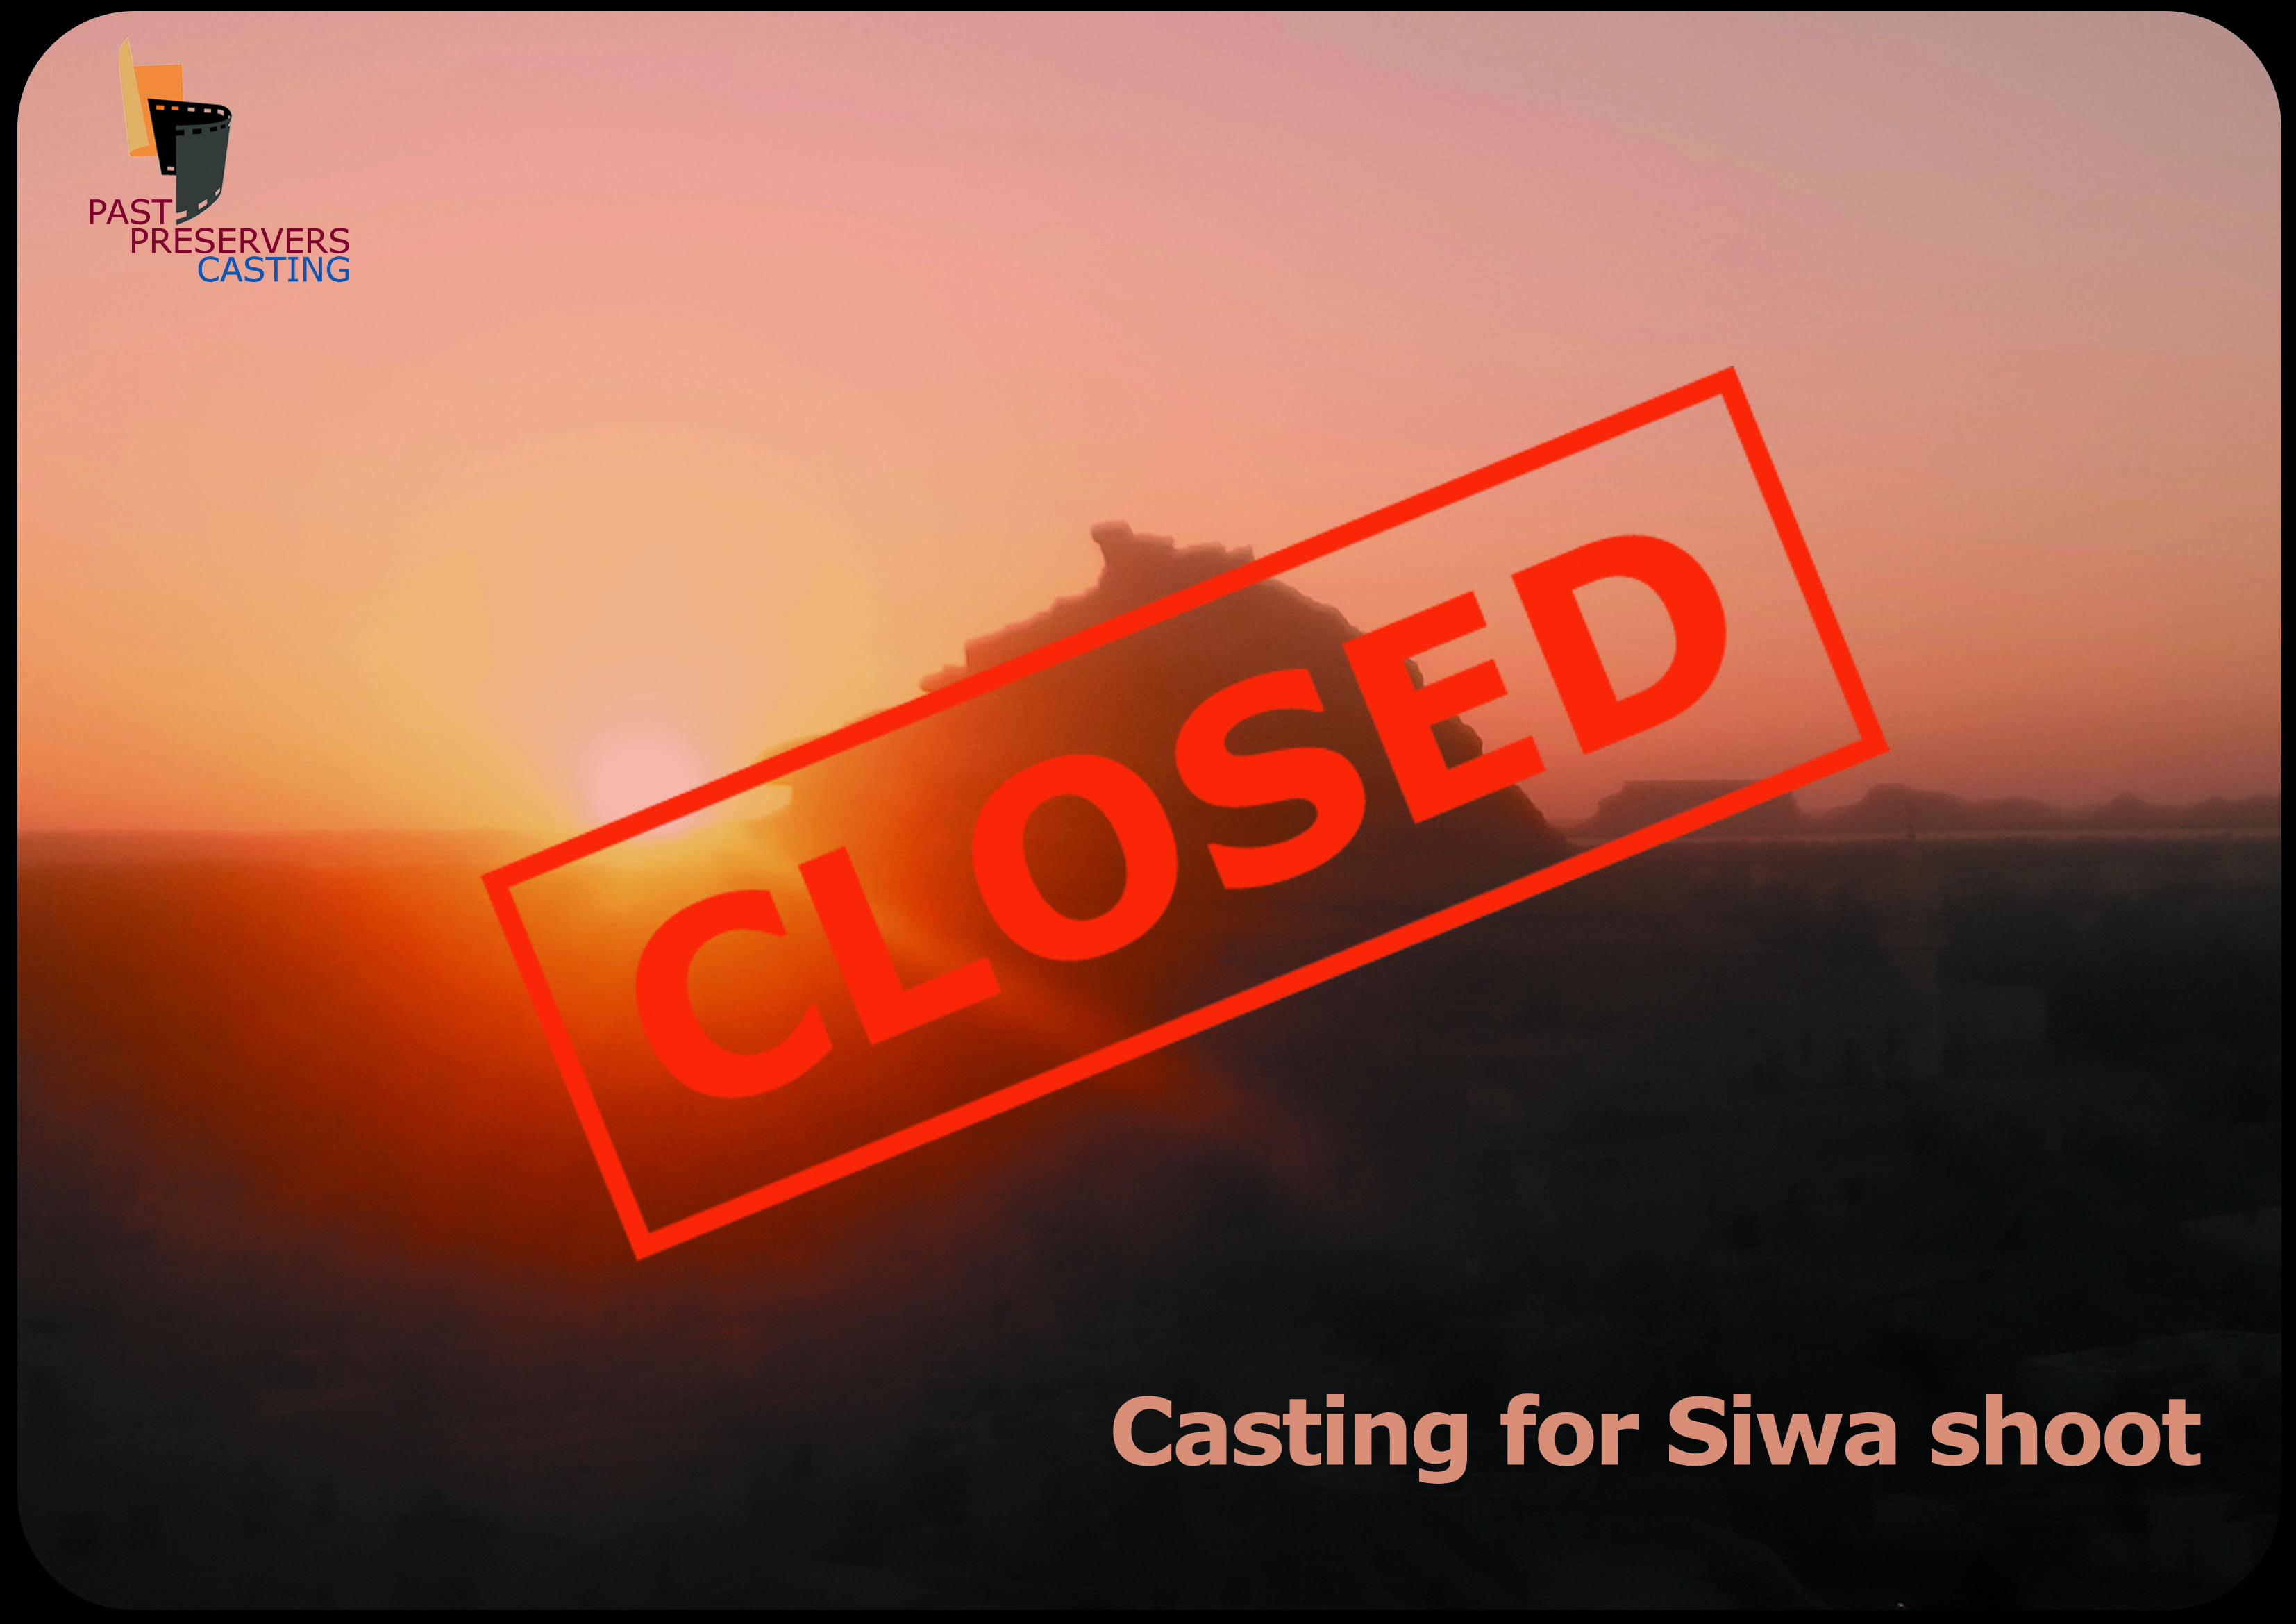 An Archaeologist/Egyptologist for a one day shoot in Siwa needed